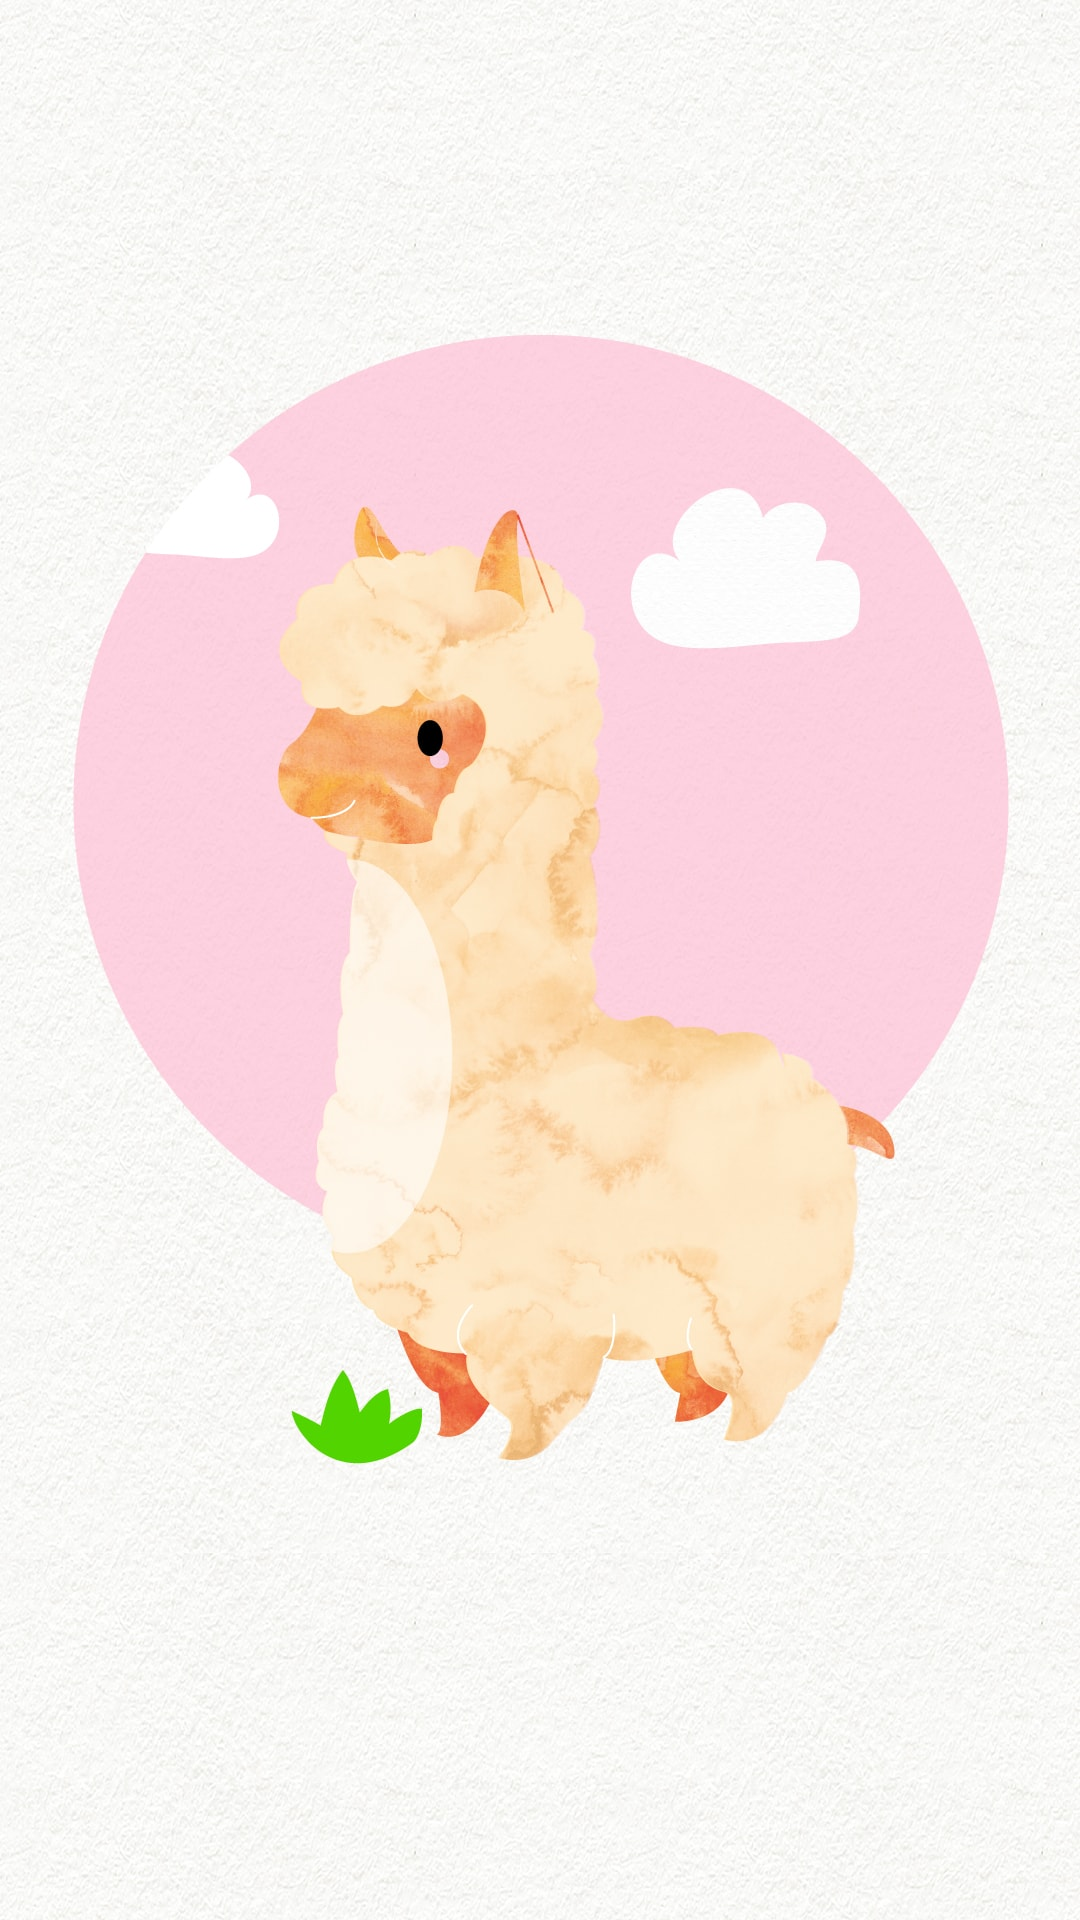 iPhone Wallpaper: lama_rose